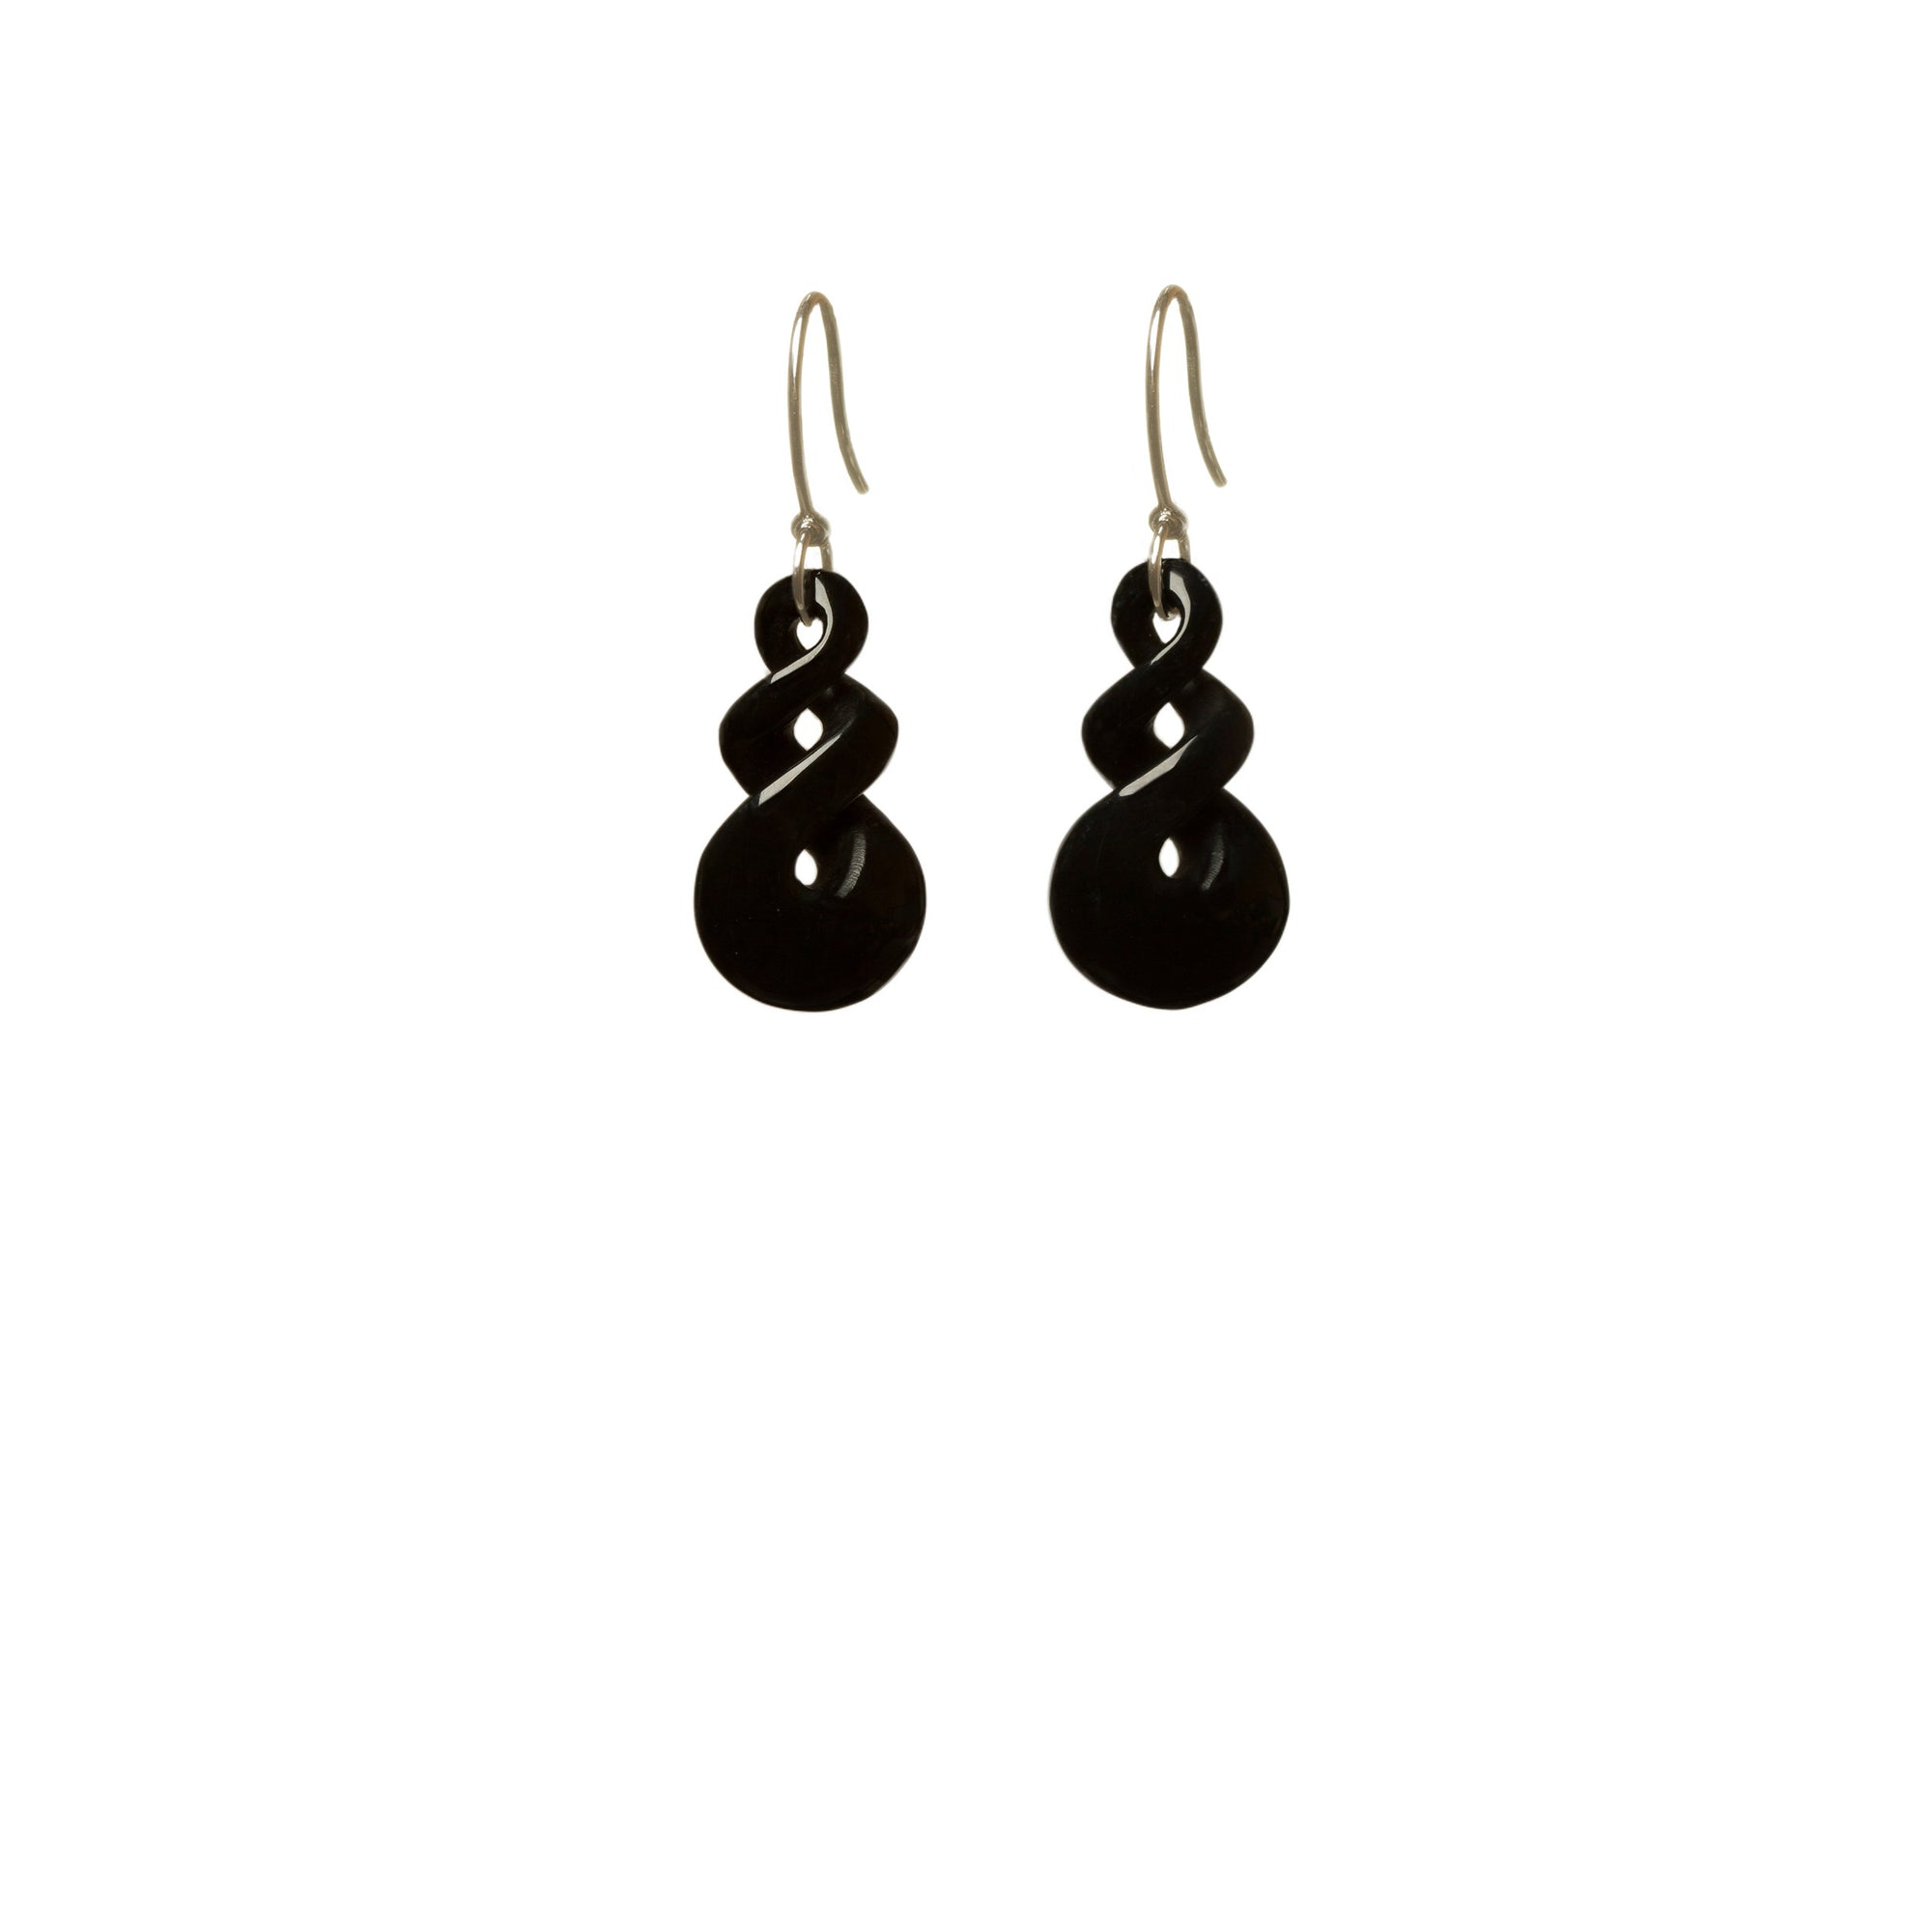 Australian Black Jade Double Twist Earrings